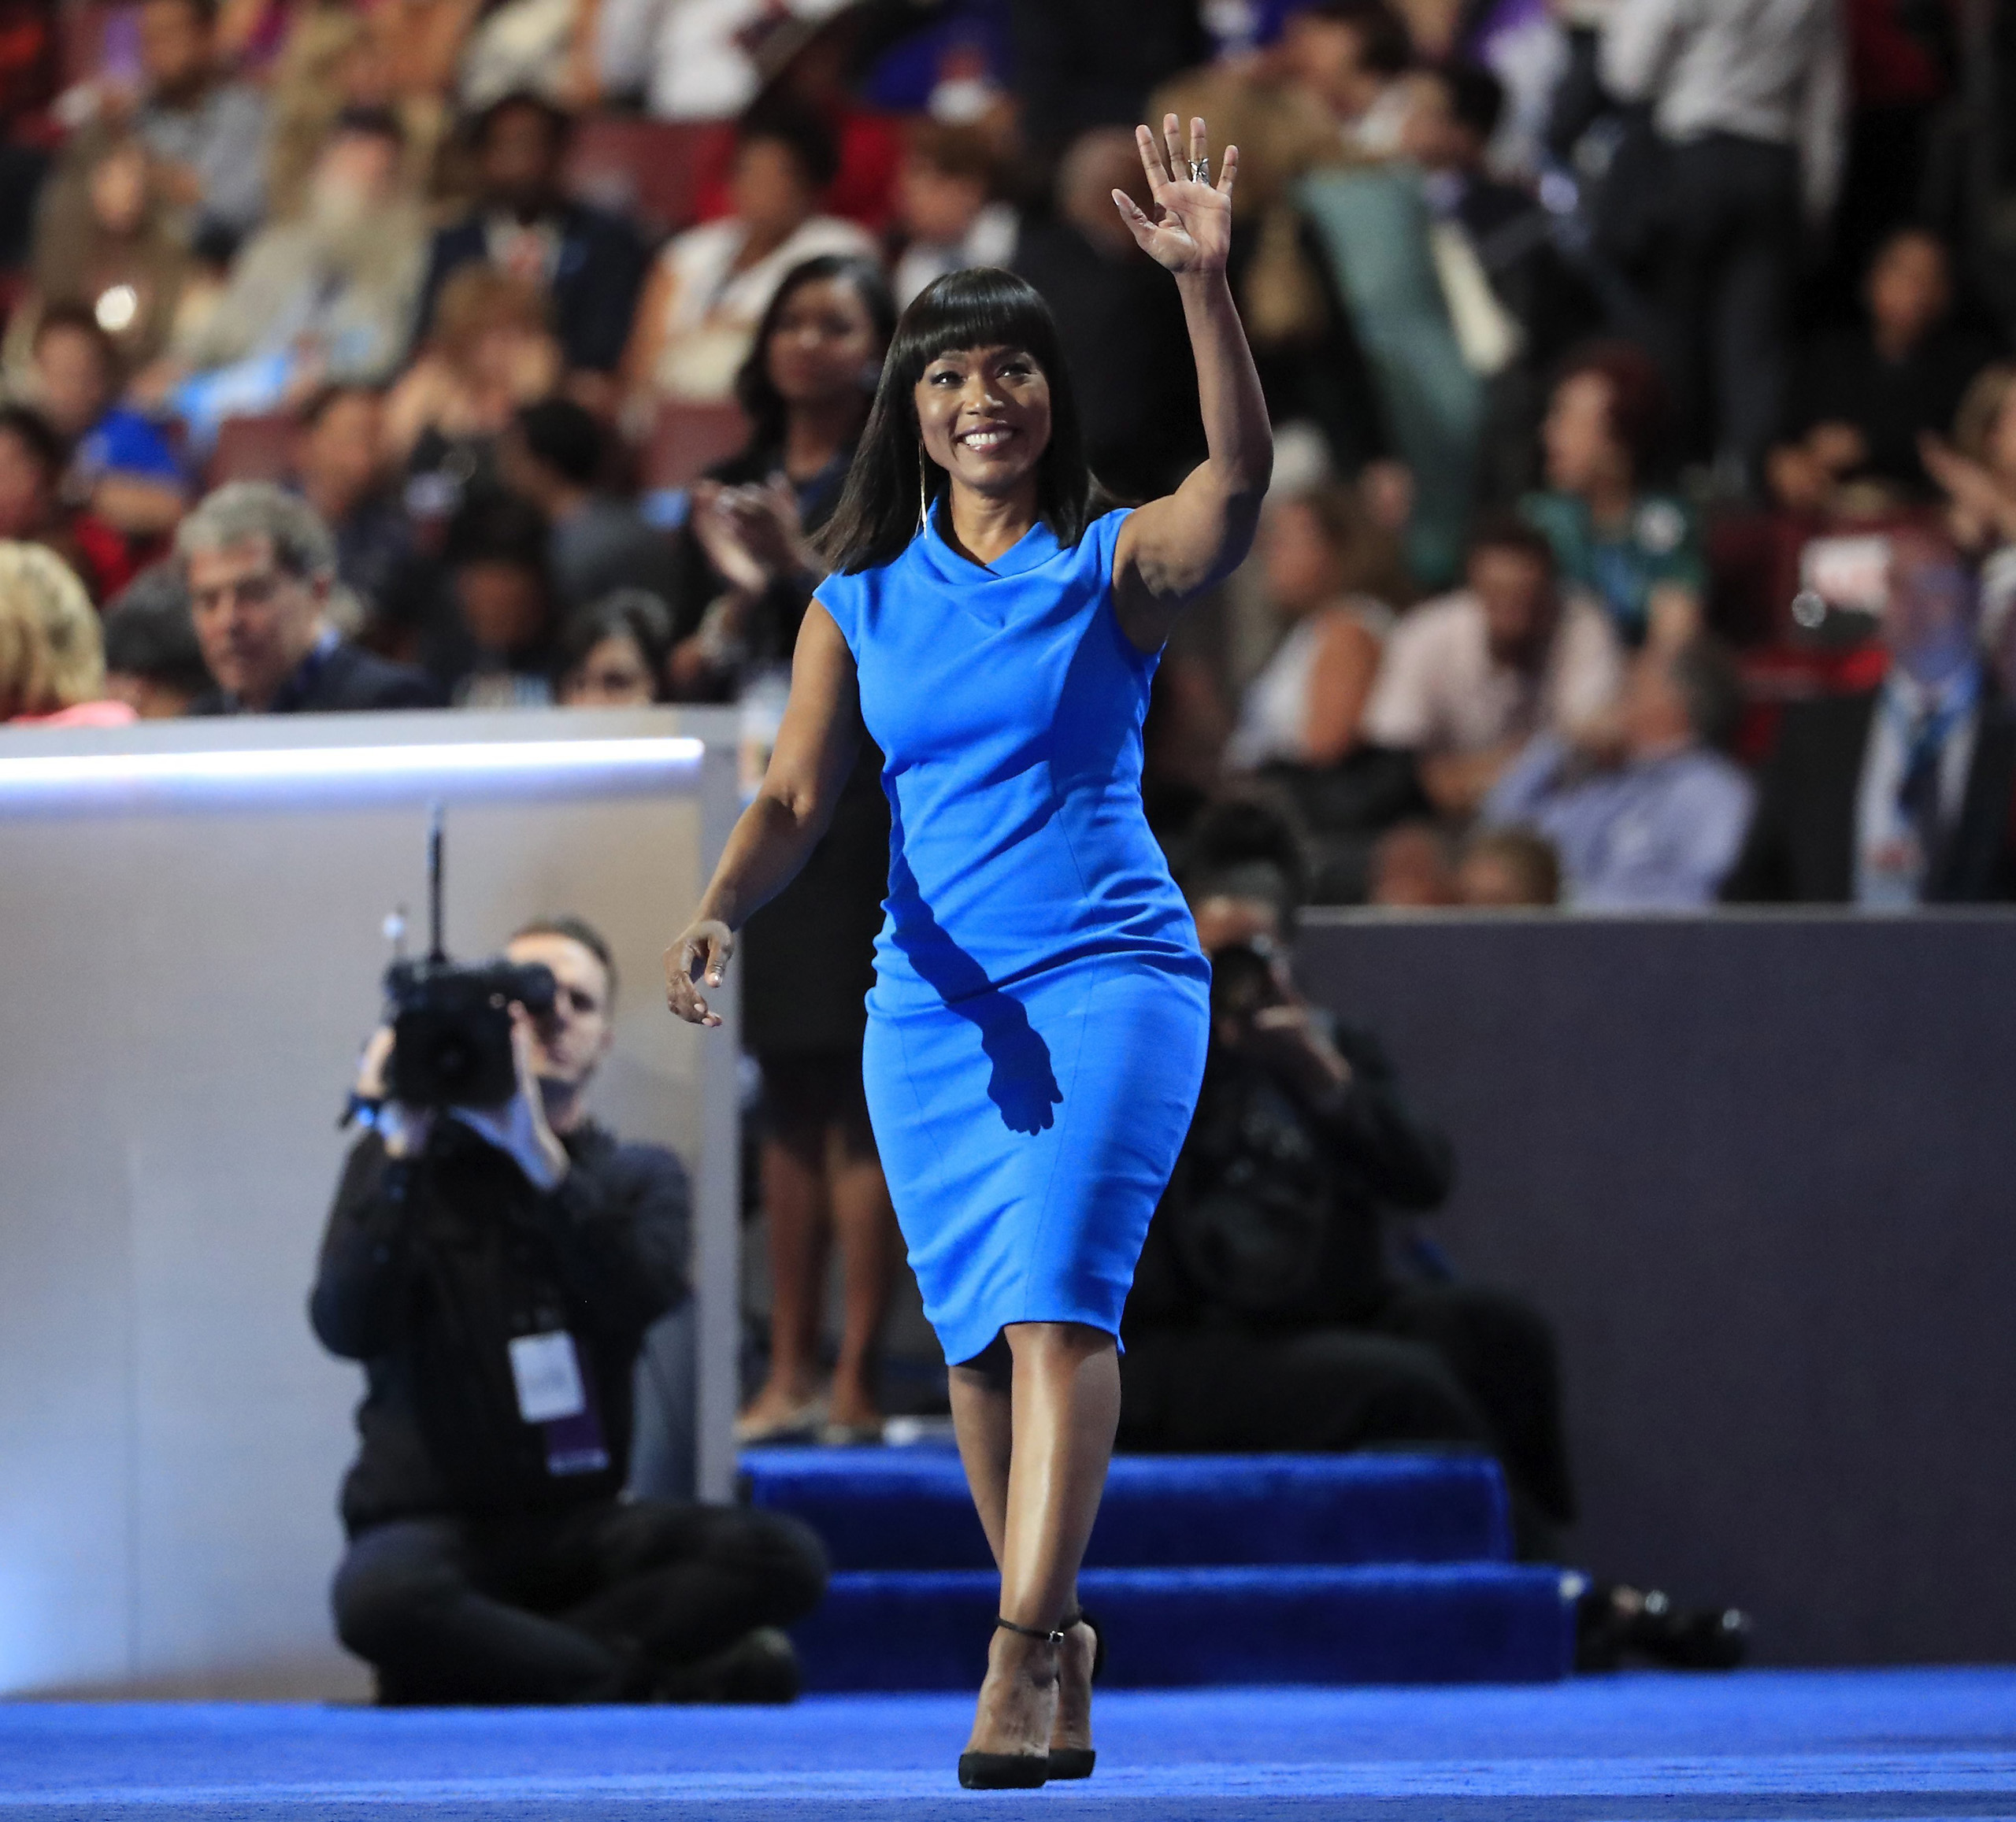 Angela Bassett walks to the stage prior to speaking on the third day of the Democratic National Convention at the Wells Fargo Center in Philadelphia on July 27, 2016.